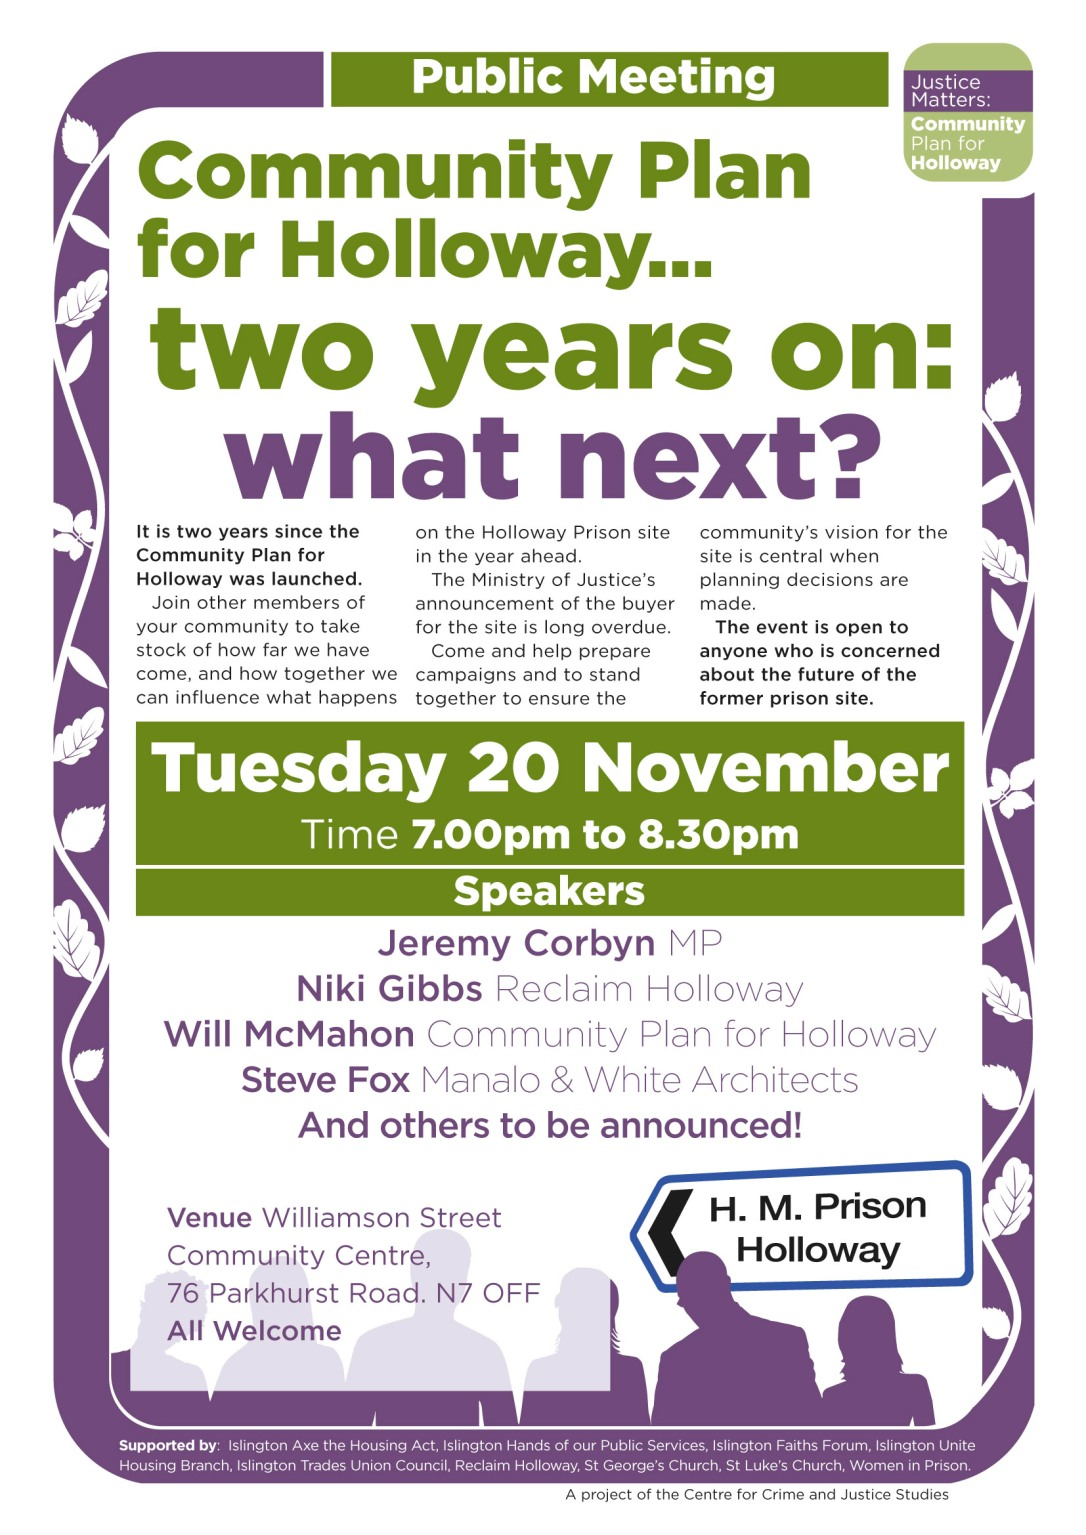 Community Plan for Holloway 20th Nov public meeting flyer social media.jpg